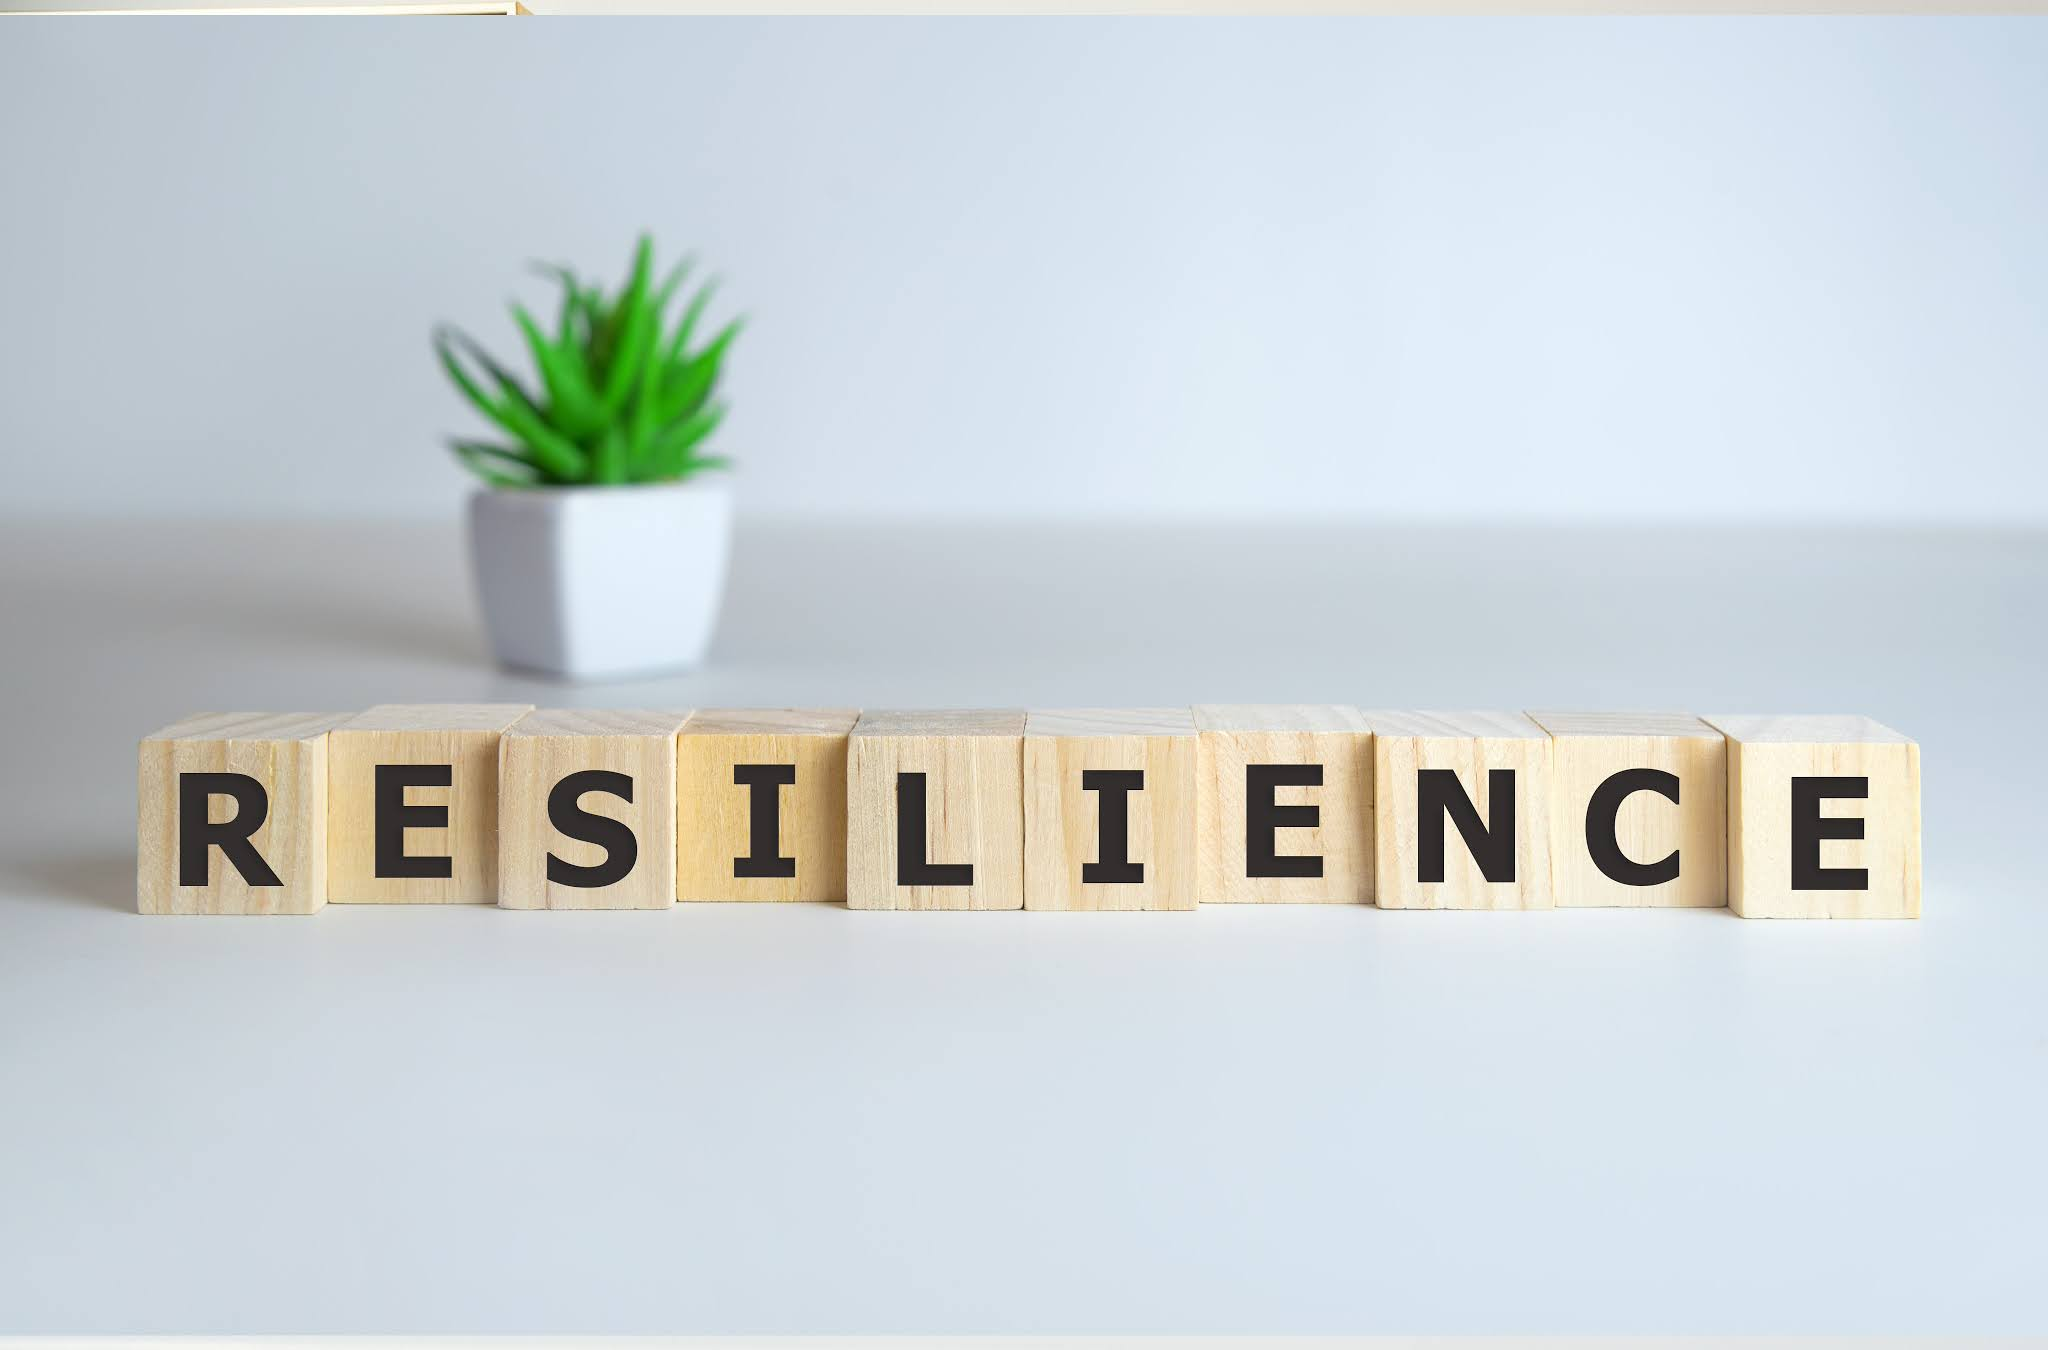 resilience spelt out in scrabble letters